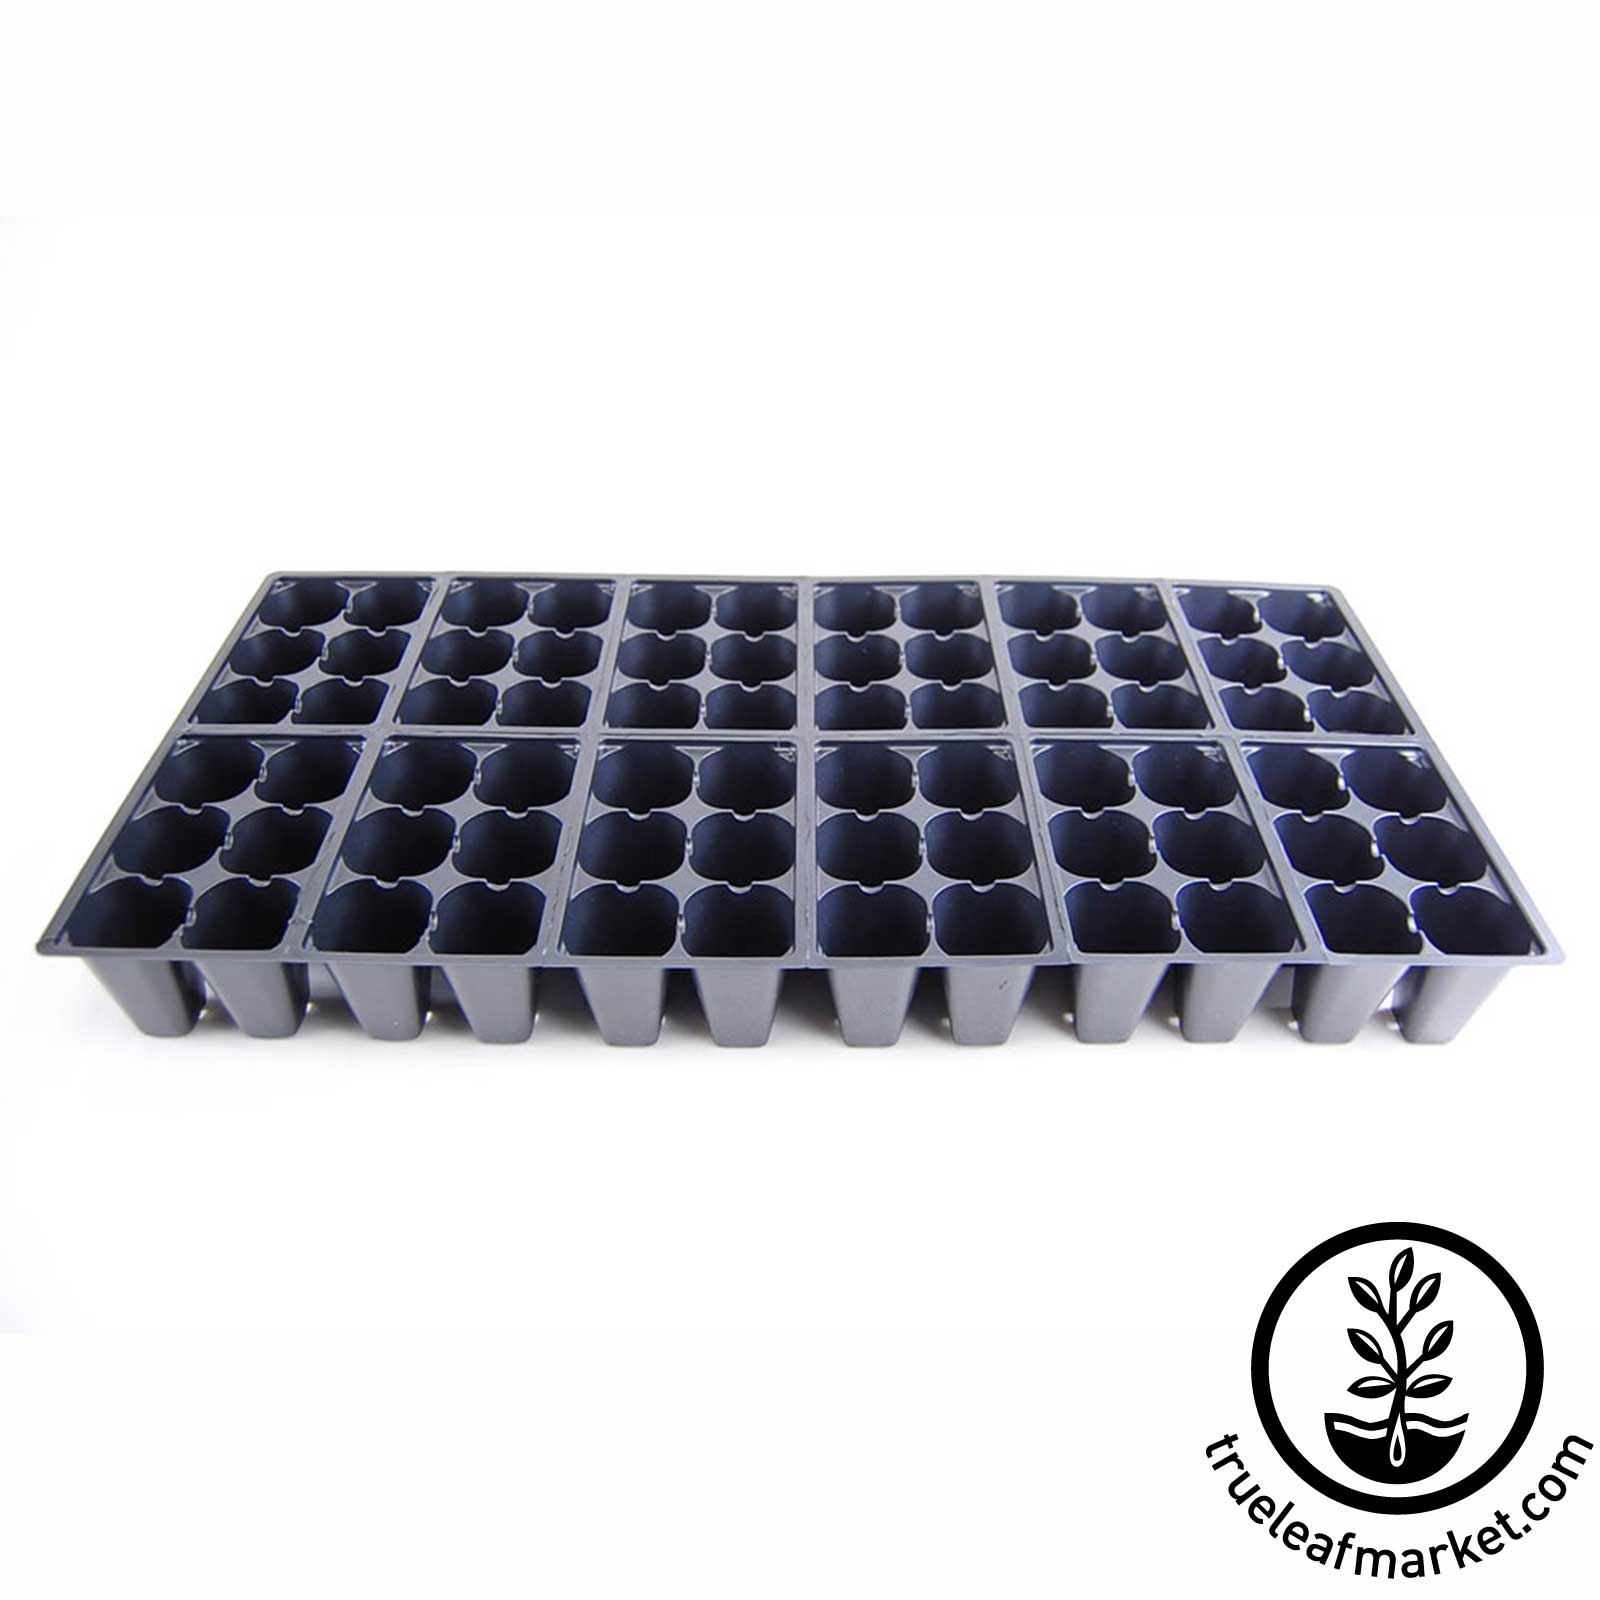 72 Cell Tray Insert (Used with 10x20 Trays)